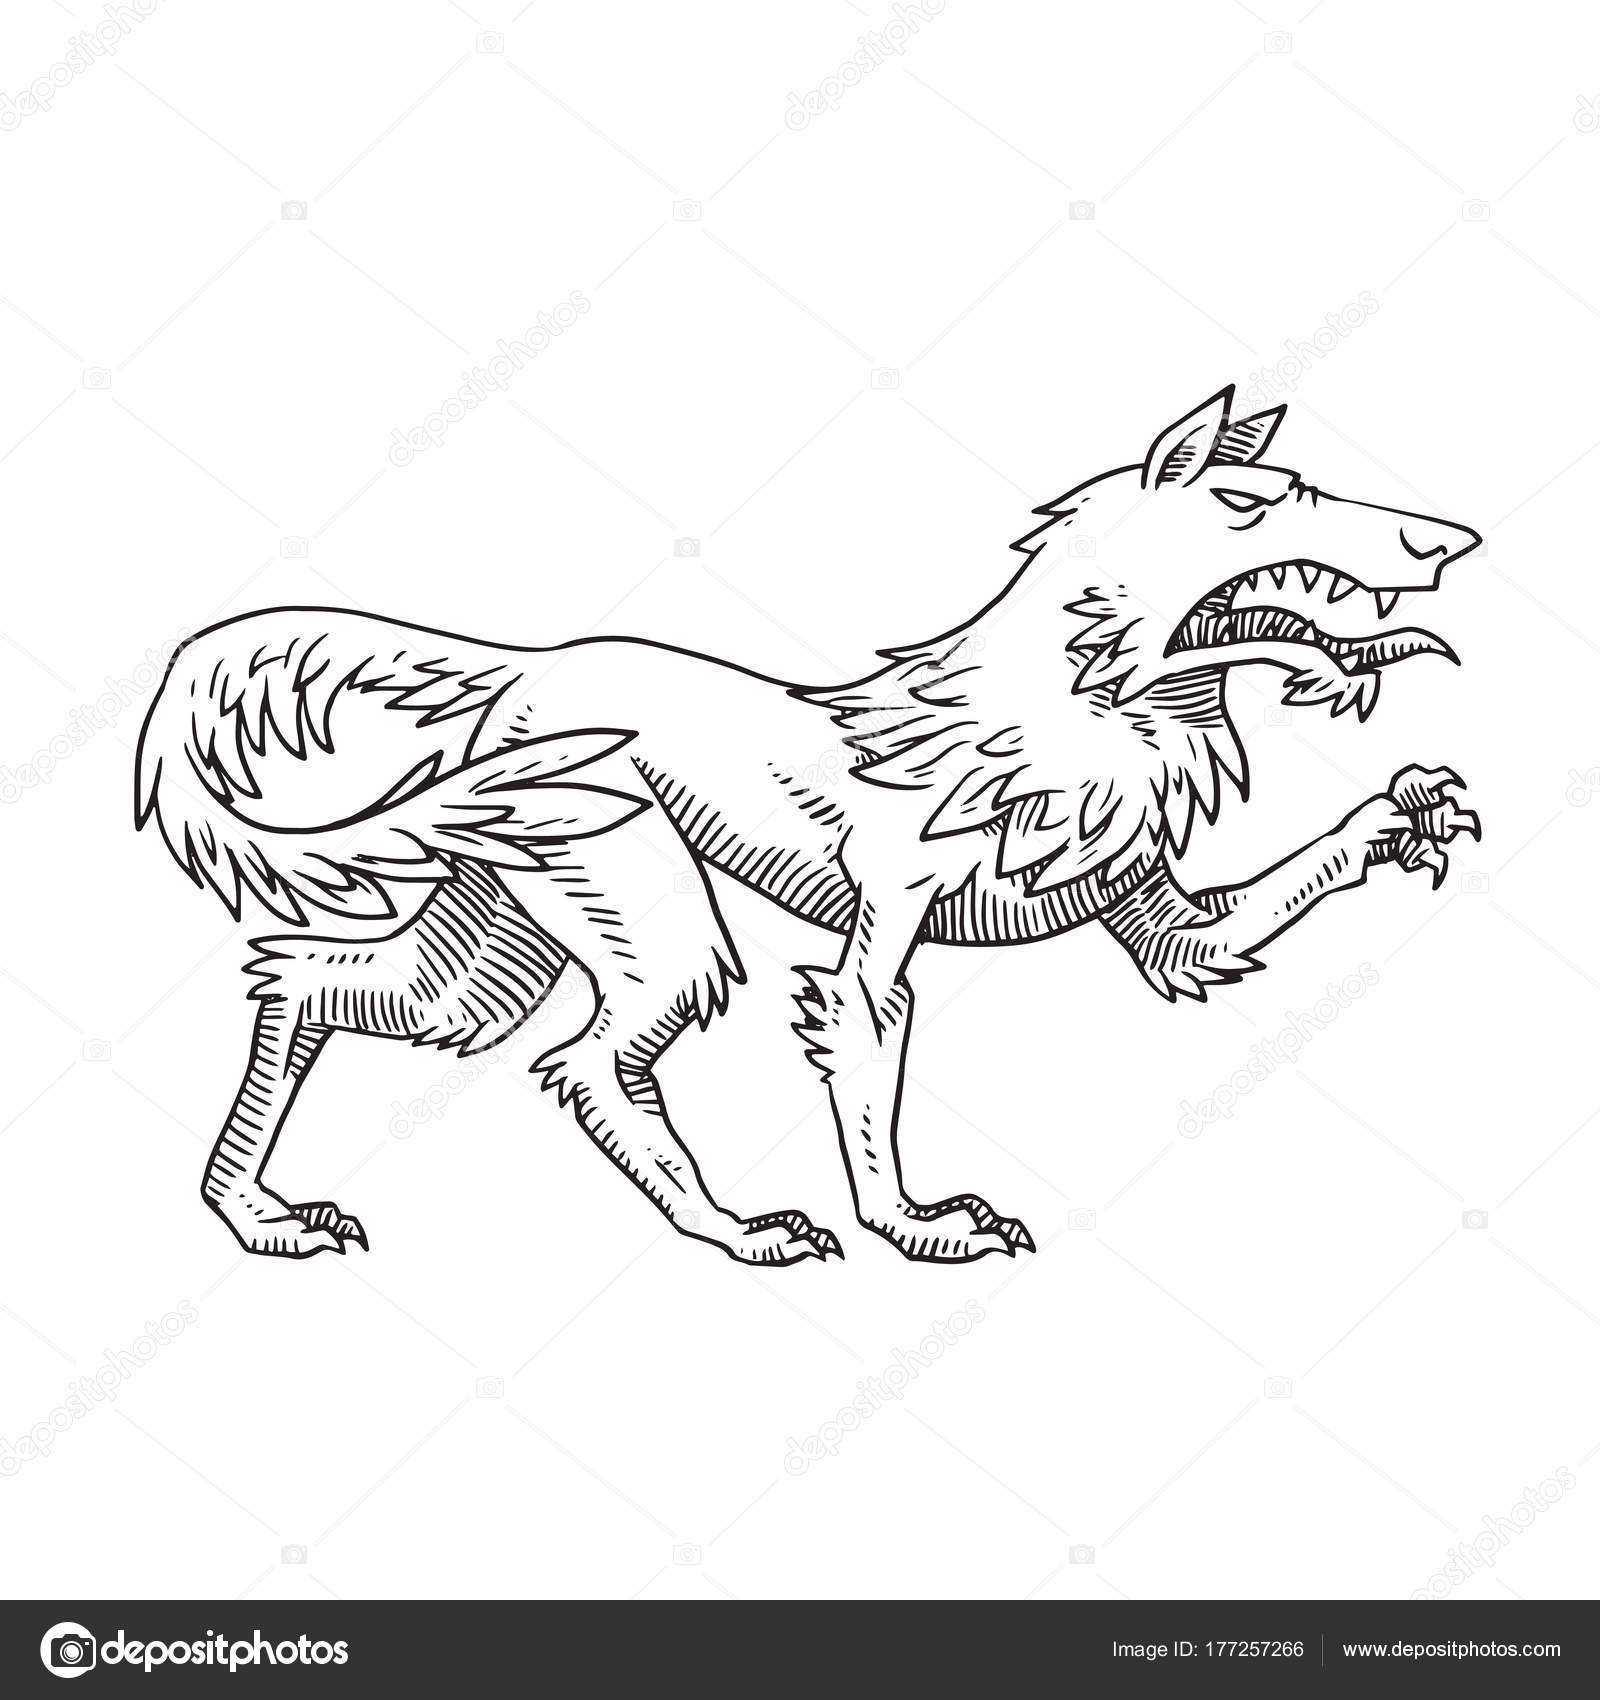 The Best Free Growling Drawing Images Download From 125